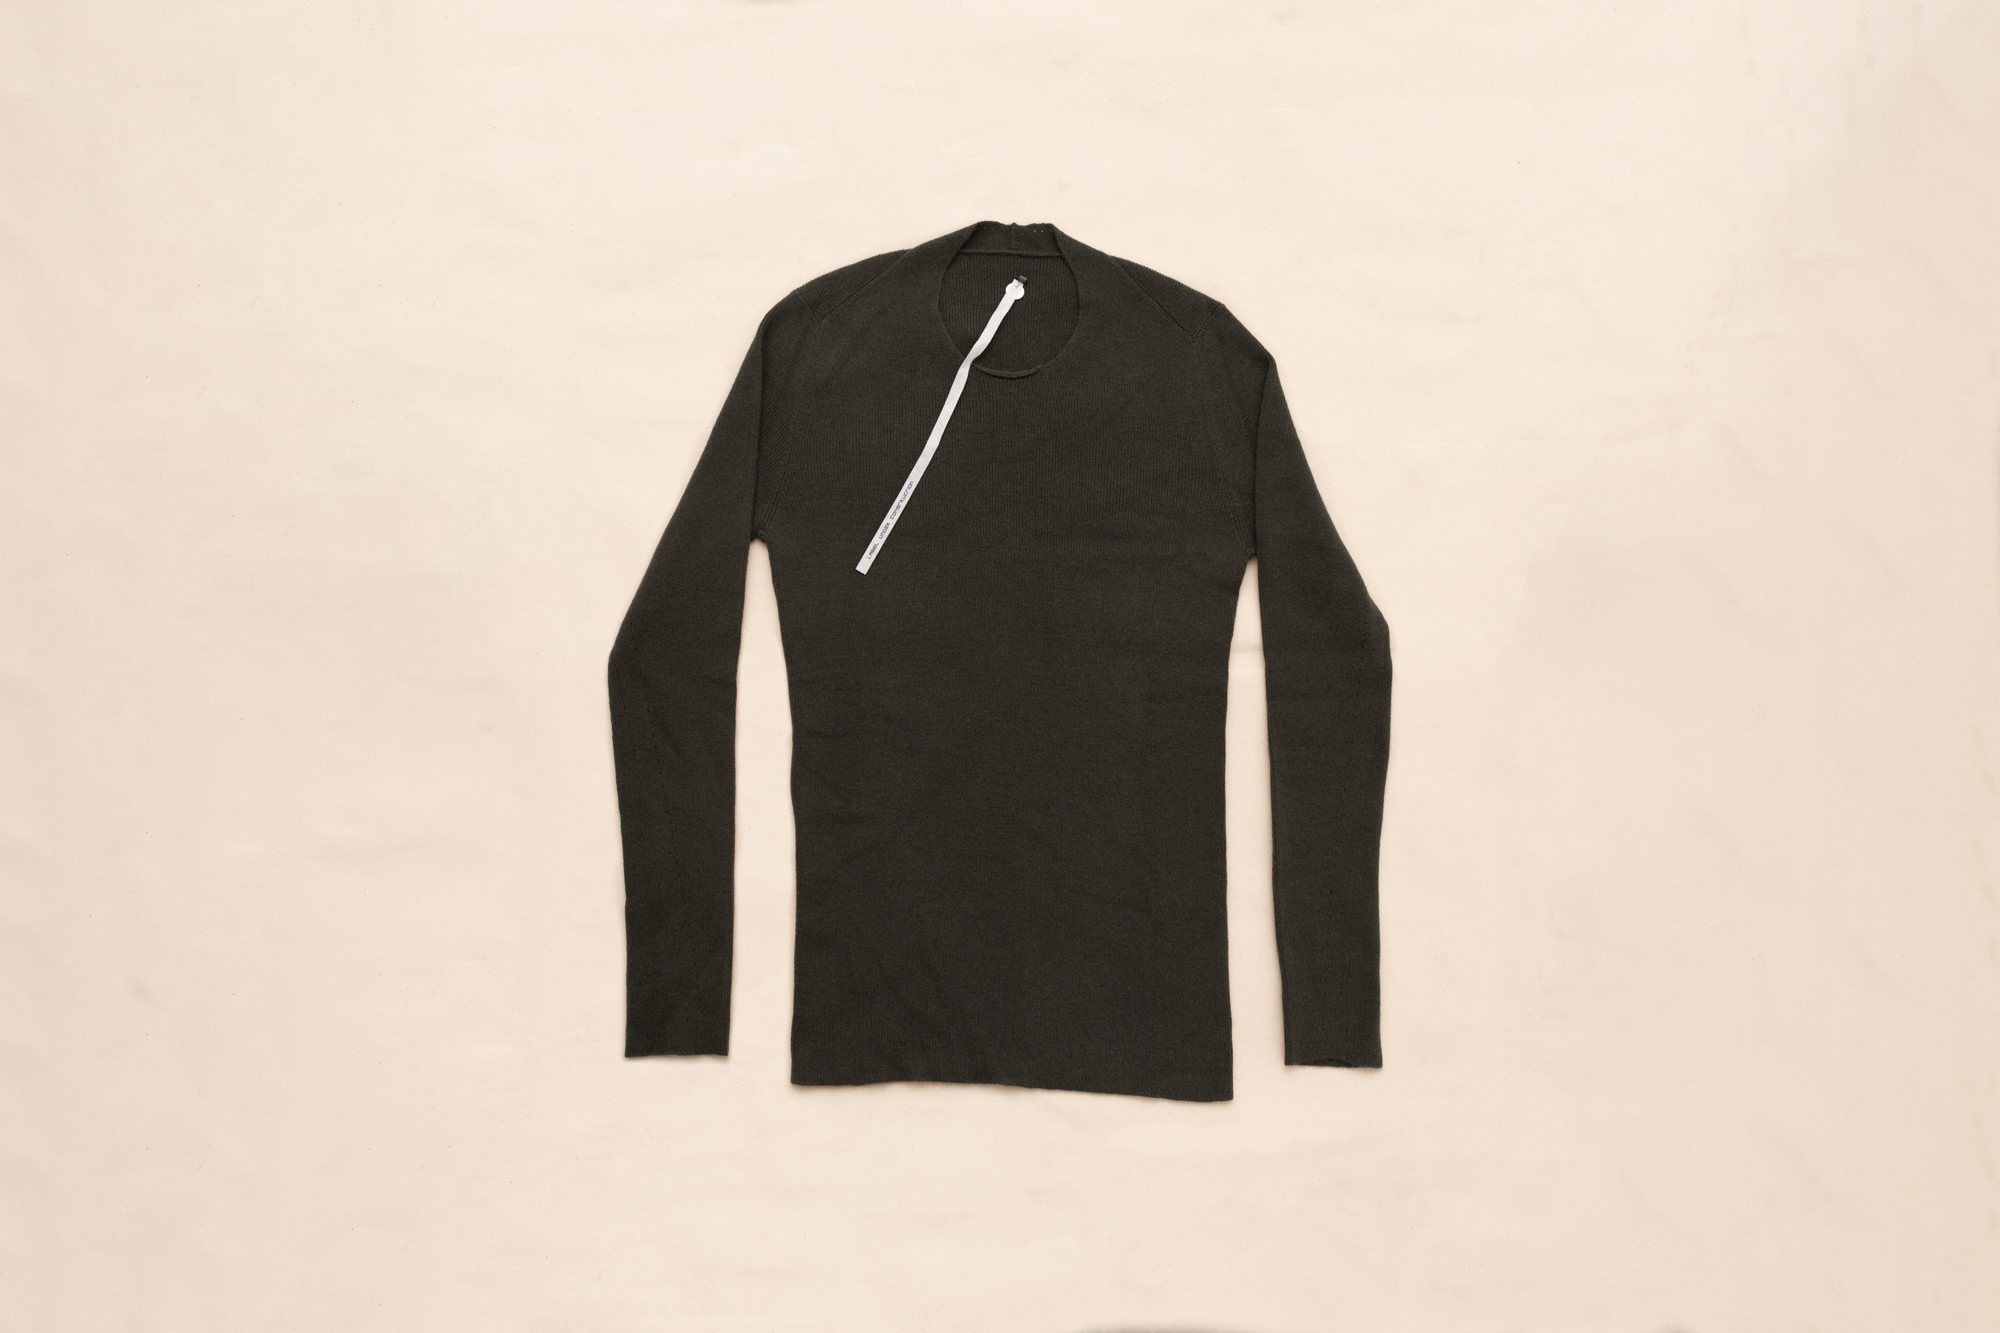 PRIMARY CIRCLE NECK RIBBED SWEATER BY LUCA LAURINI